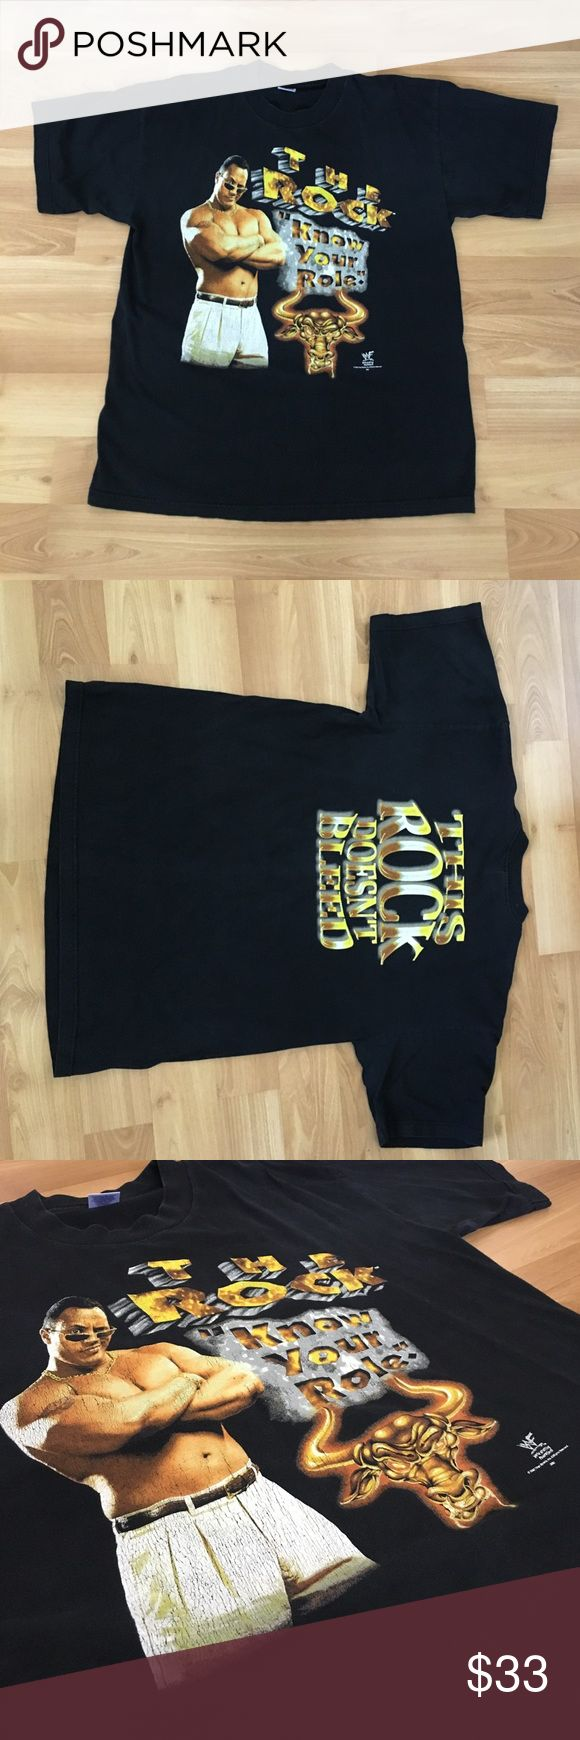 Vintage 1998 The Rock WWF T Shirt Sz XL Vintage the rock t shirt wwe wwf t shirt size extra large. This shirt features Dwayne the rock Johnson with the quote the rock know your role on the front. On the back, this rock doesn't bleed. The rock is one of the best wrestlers of all time and has numerous phrases including can you smell what the rock is cooking. Shirt only shows a few signs of cracking on the logo, but is in great condition for 20 years old. WWE Shirts Tees - Short Sleeve